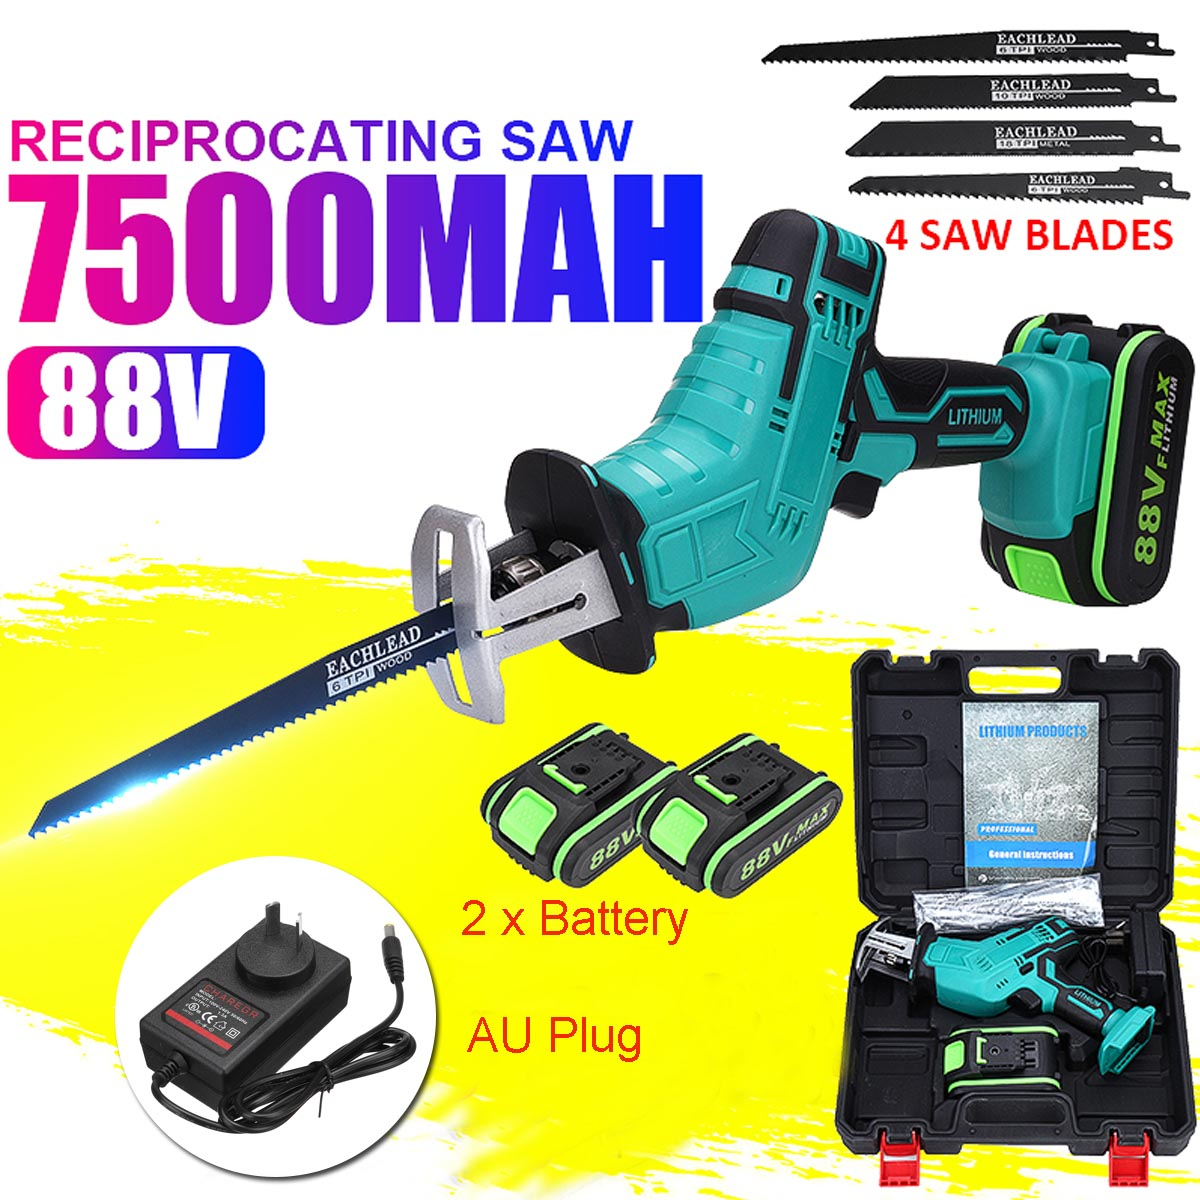 88V 7500mAh Battery Cordless Reciprocating Saw Wood Metal Cutting Saw Saber Saw Portable Electric Saw Rechargeable Power Tool